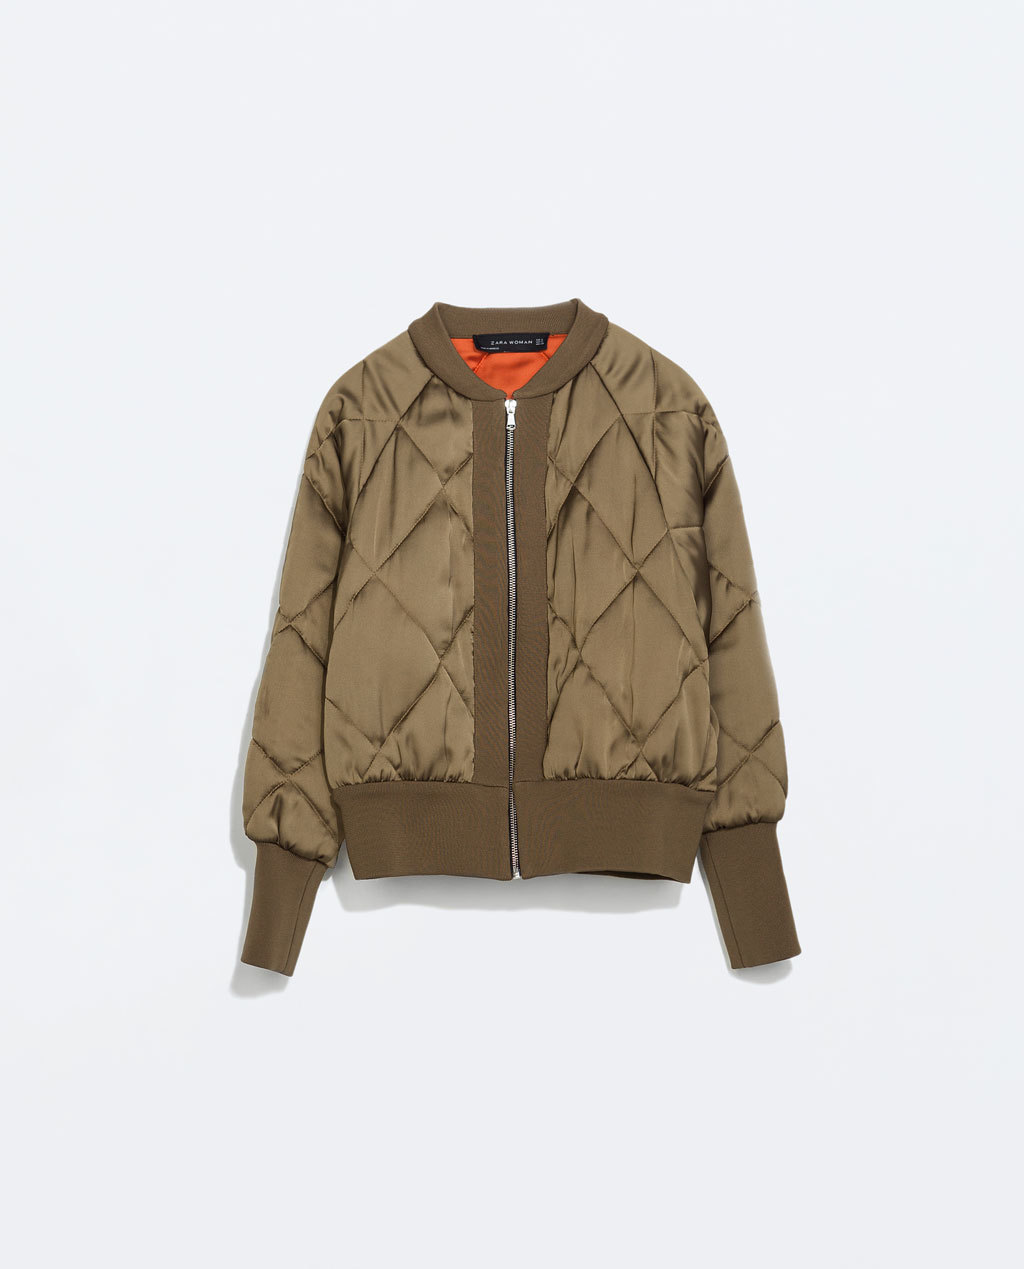 Short Padded Bomber Jacket - pattern: plain; collar: round collar/collarless; style: bomber; predominant colour: khaki; occasions: casual, creative work; length: standard; fit: straight cut (boxy); fibres: polyester/polyamide - 100%; sleeve length: long sleeve; sleeve style: standard; collar break: high; pattern type: fabric; texture group: other - bulky/heavy; embellishment: quilted; season: s/s 2014; trends: outerwear chic